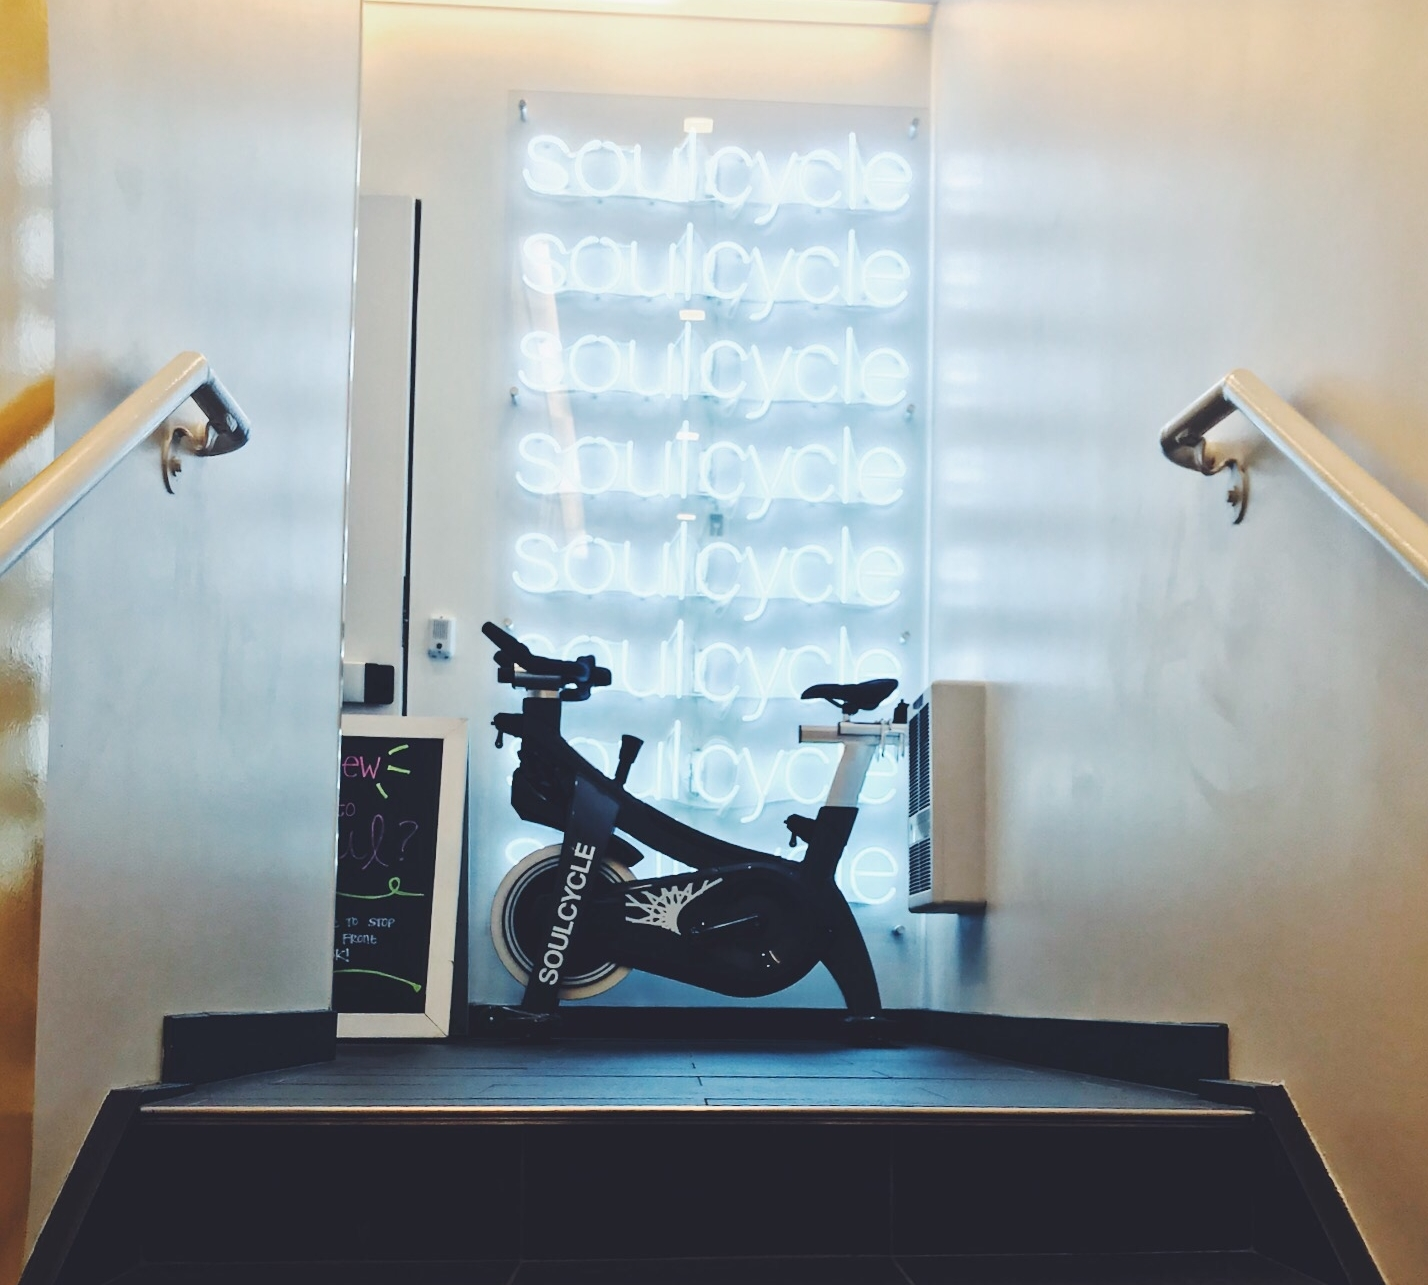 Soulcycle chicago spin bike in studio entrance.